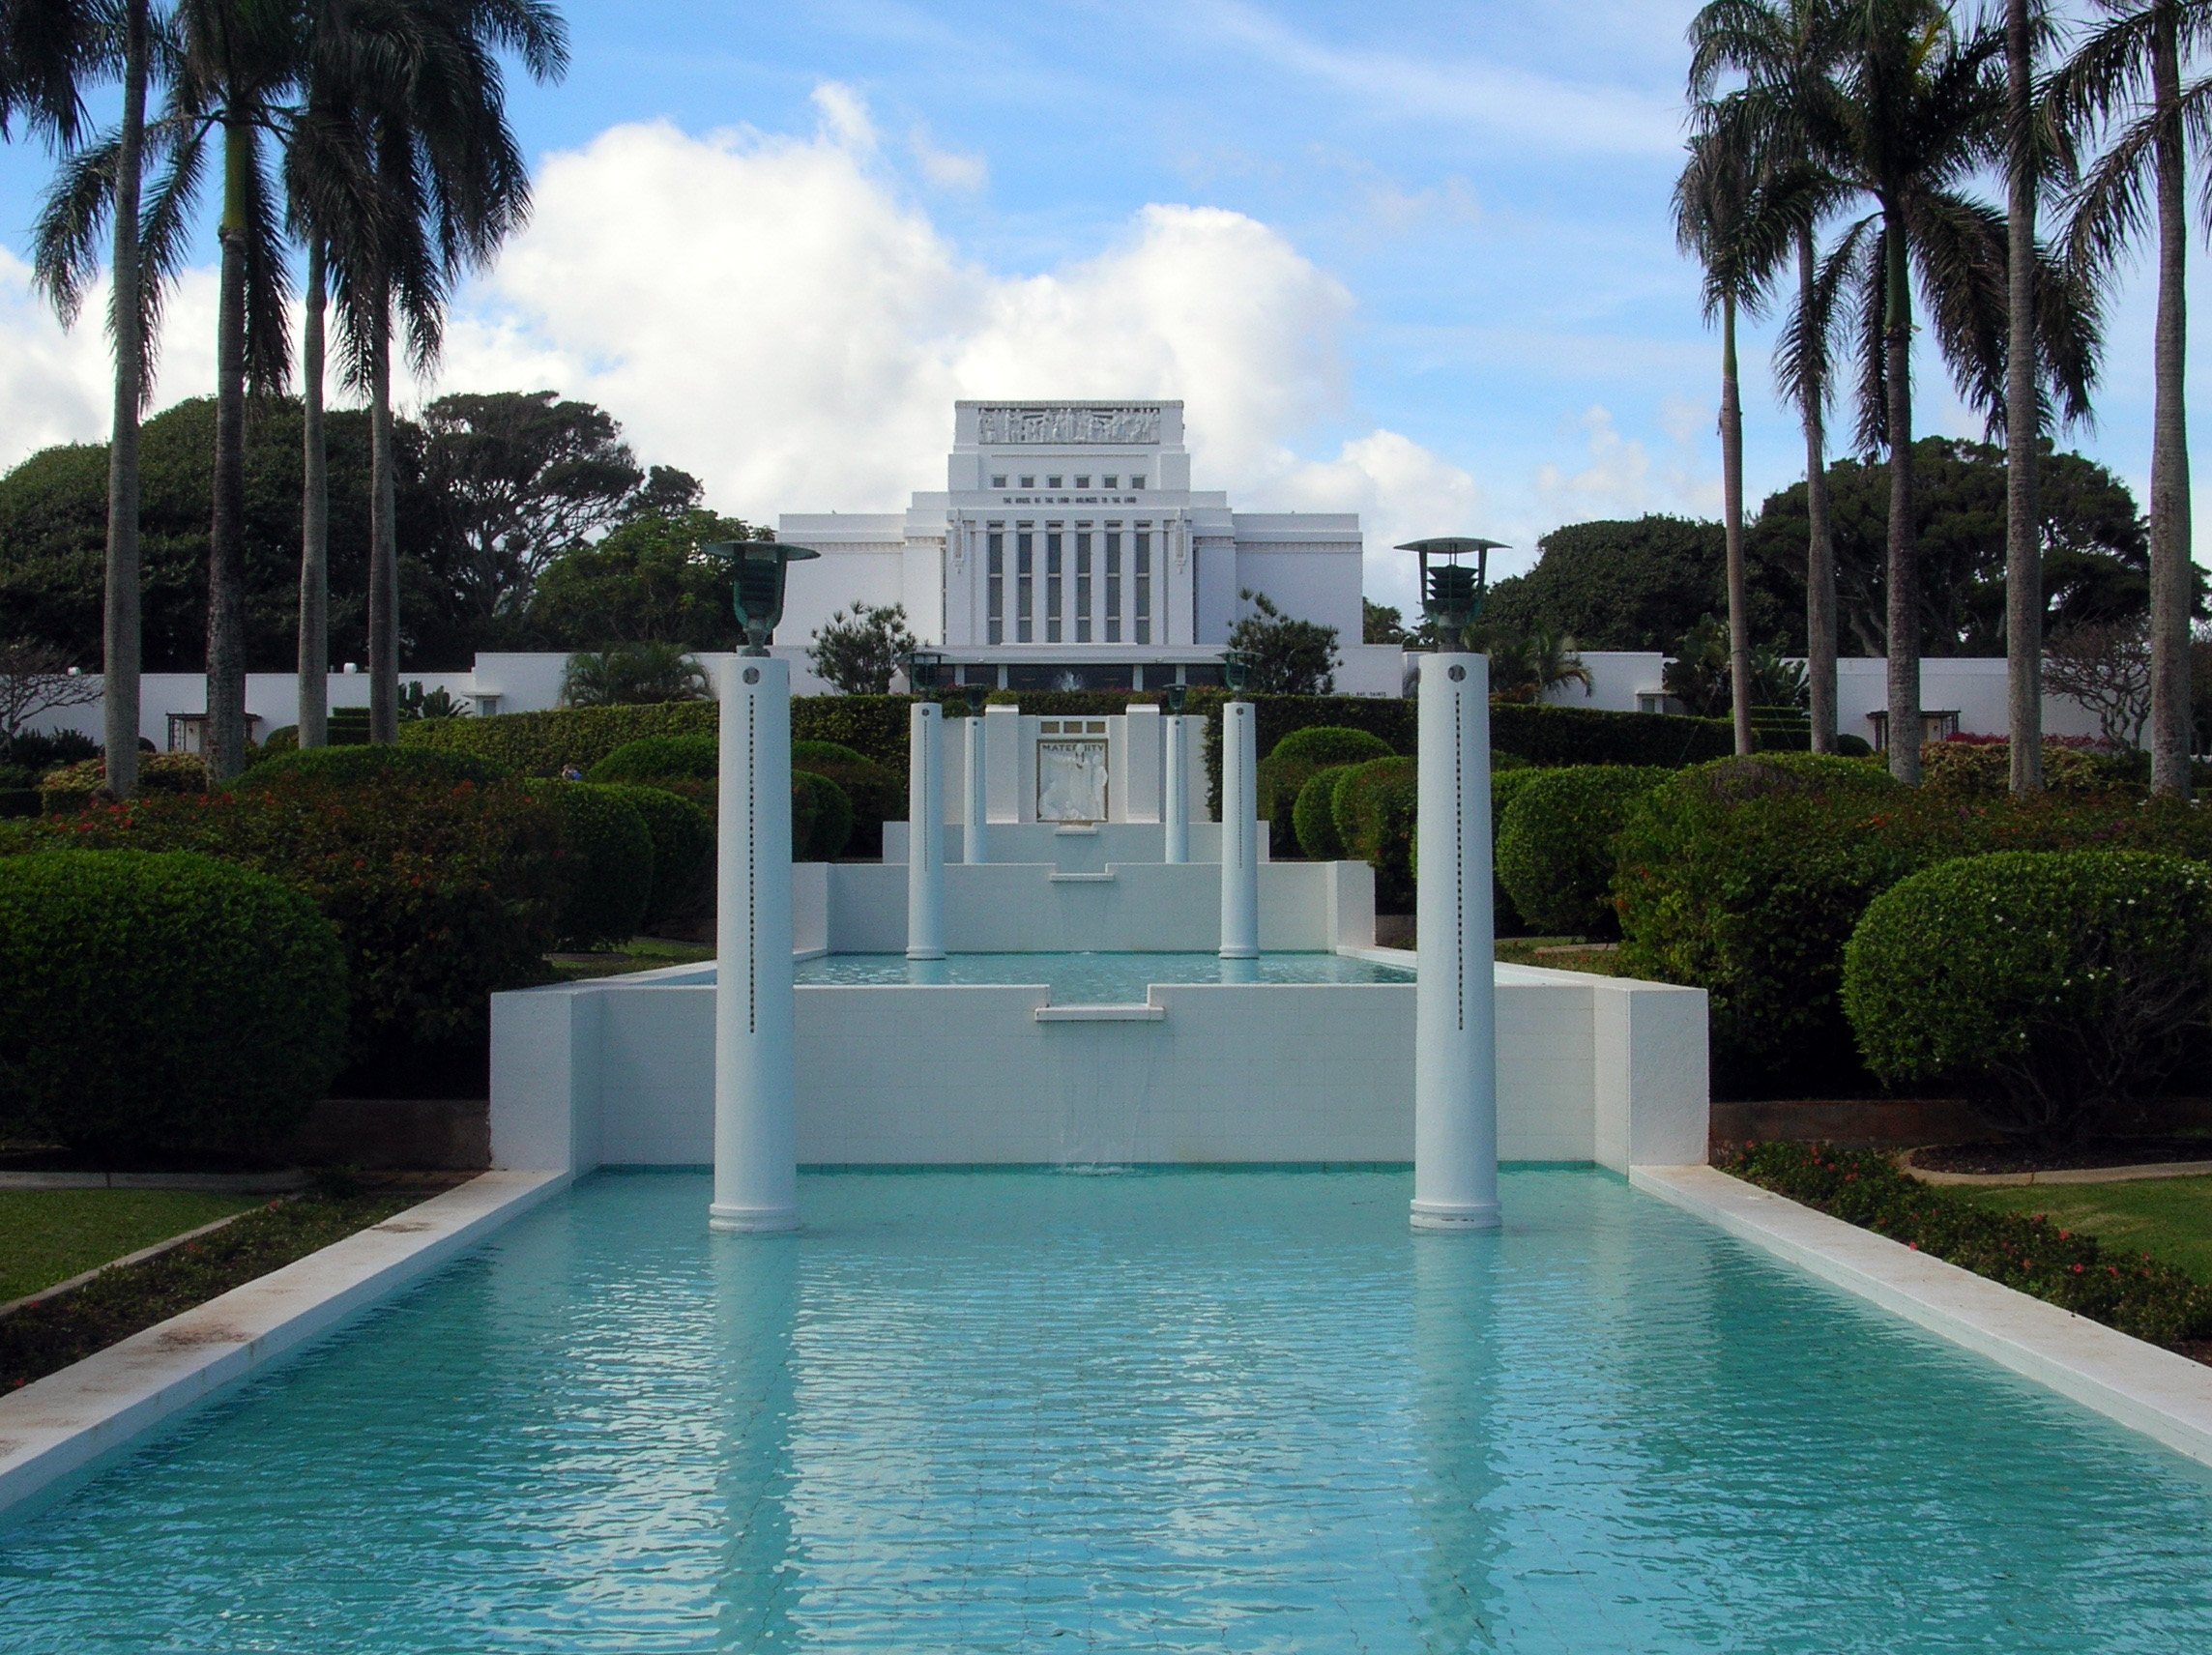 Buy a Ticket for Hawaiian Temple in Laie